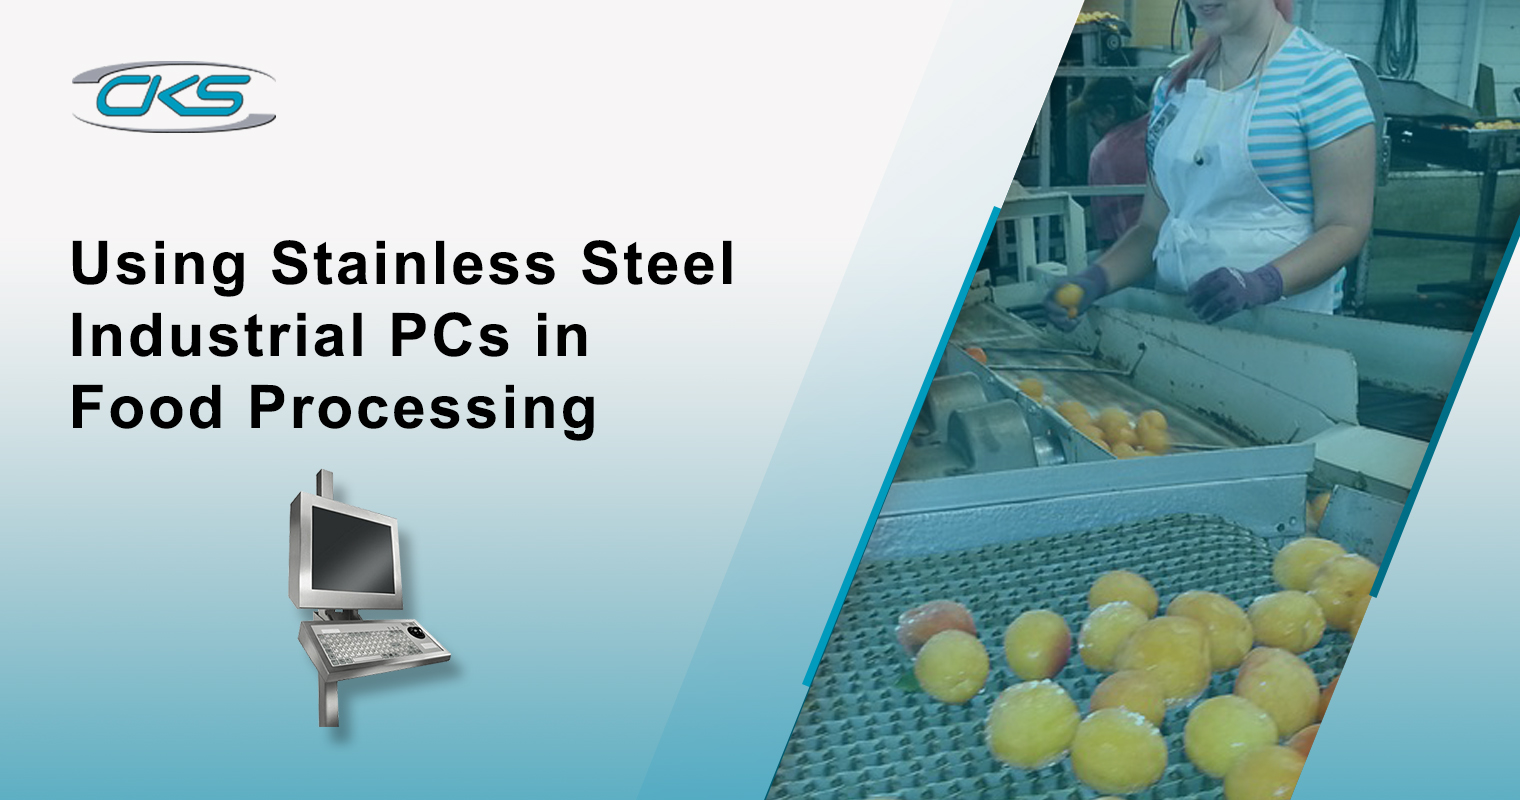 Using Stainless Steel Industrial PCs in Food Processing